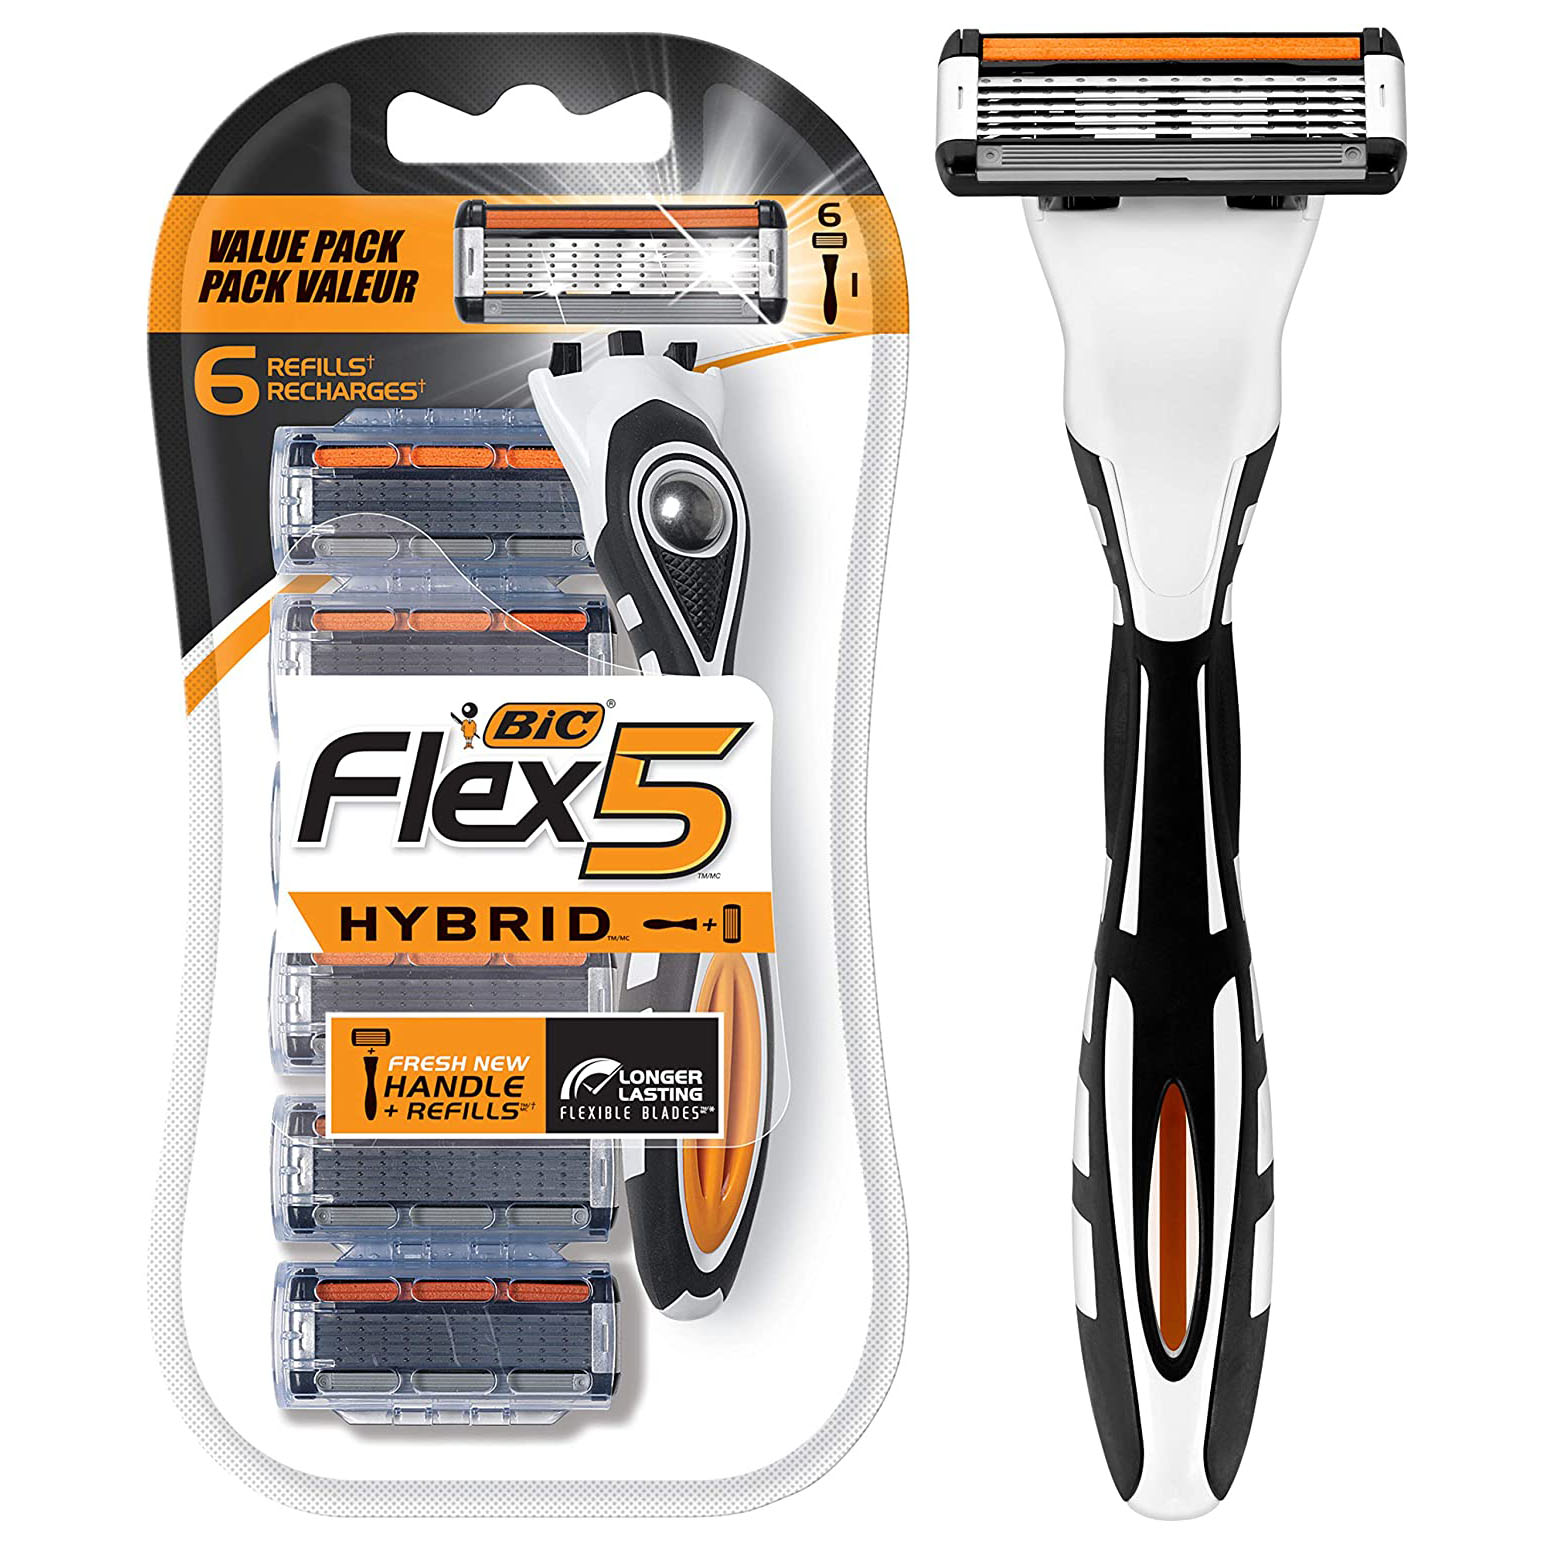 BIC Flex 5 Hybrid Men's 5-Blade Disposable Razor